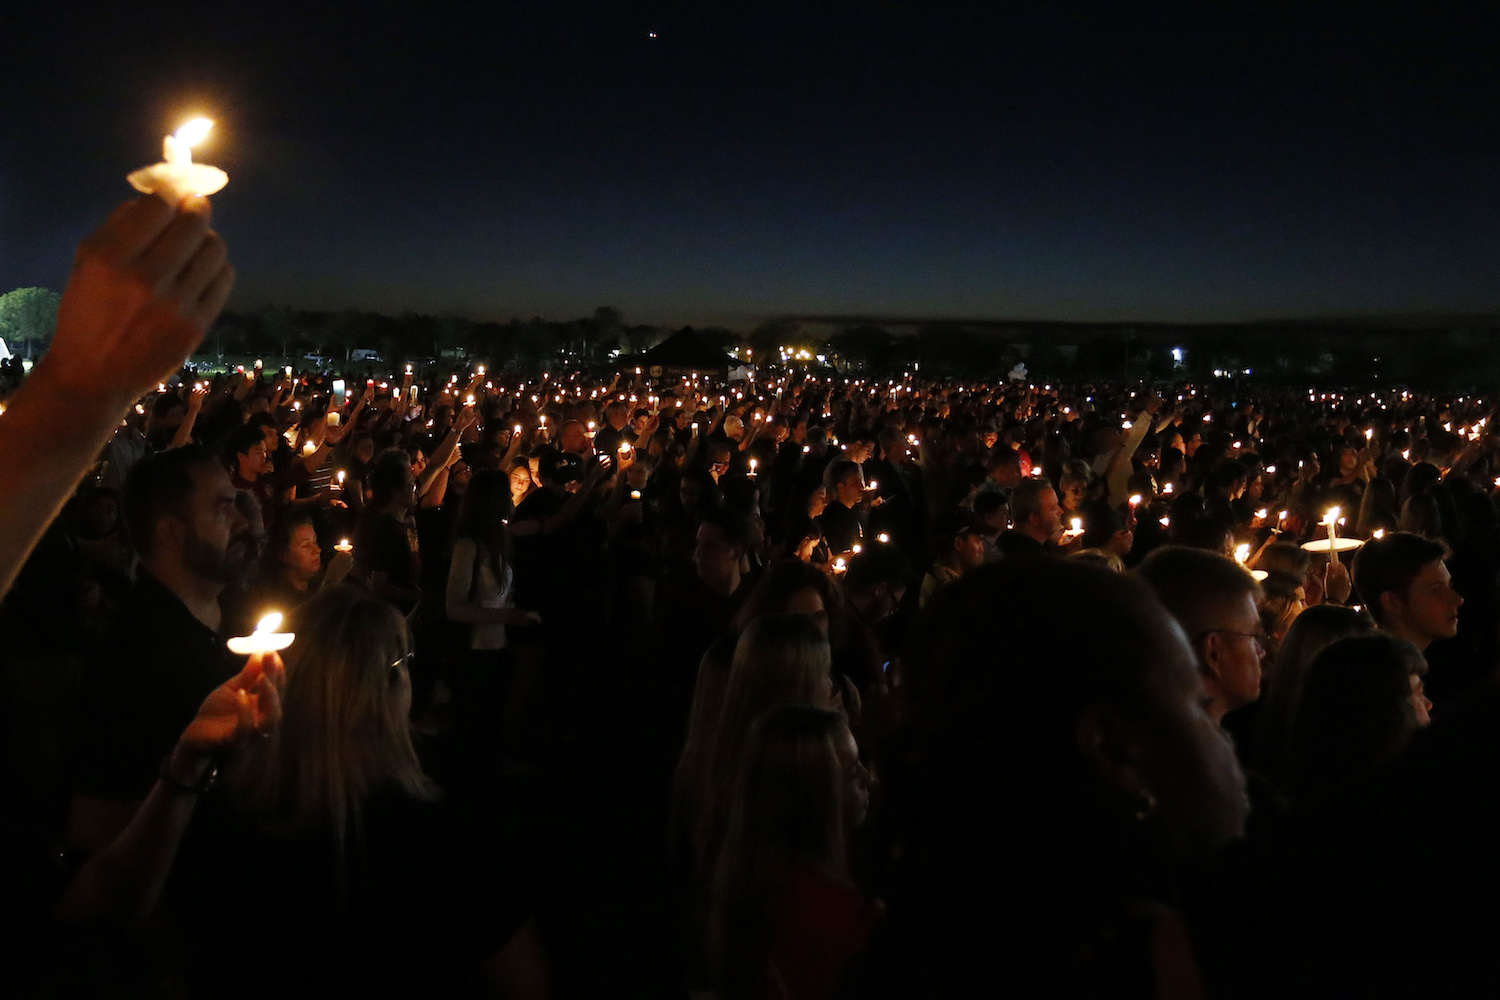 TOPSHOT - Thousands of mourners hold candles during a candlelight vigil for the victims of Marjory Stoneman Douglas High School shooting in Parkland, Florida on February 15, 2018. A former student, Nikolas Cruz, opened fire at the Florida high school leaving 17 people dead and 15 injured. / AFP PHOTO / RHONA WISE        (Photo credit should read RHONA WISE/AFP/Getty Images)